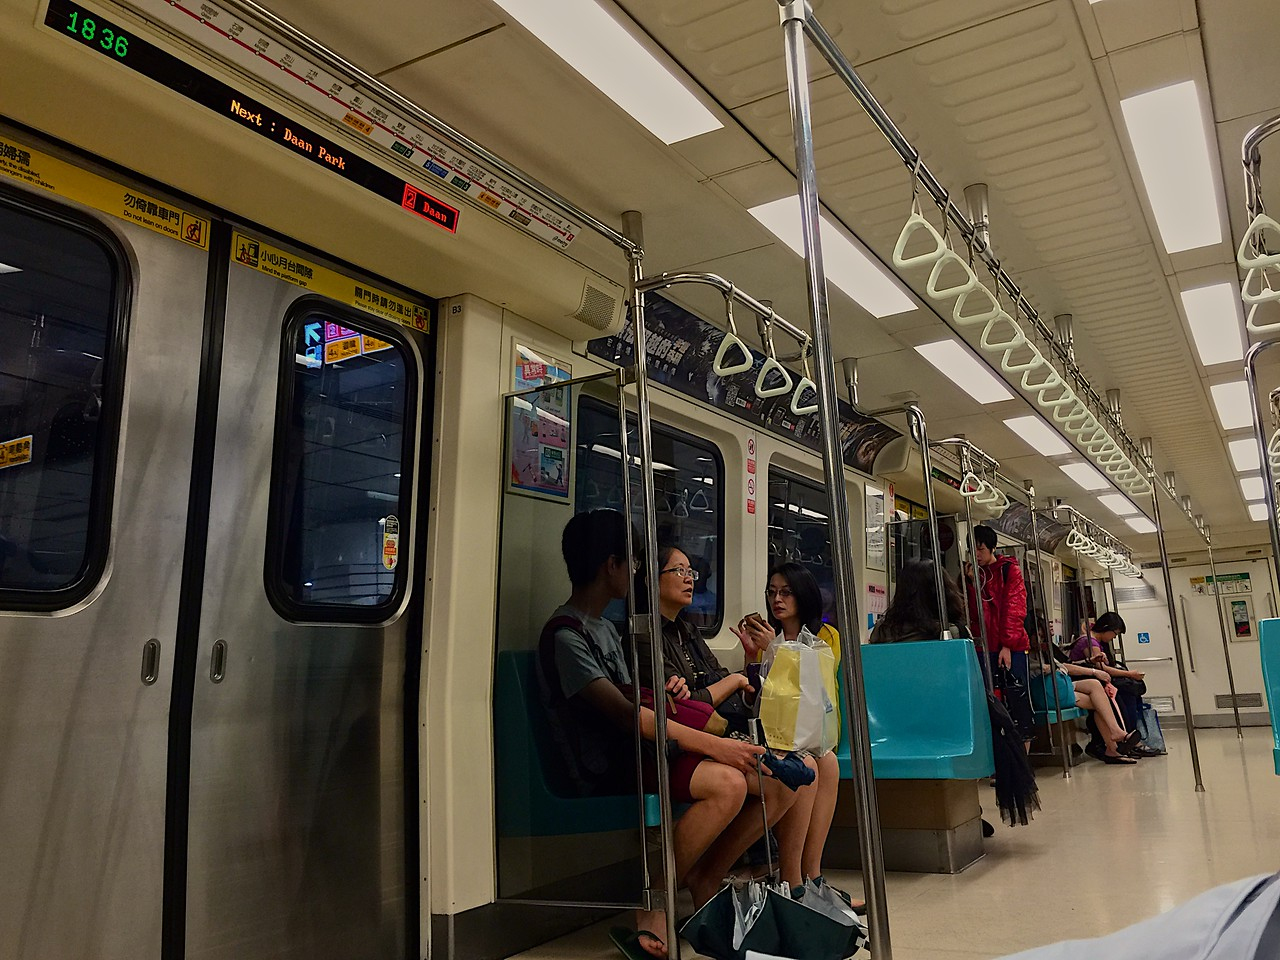 MRT trains are spotlessly clean and on-time.